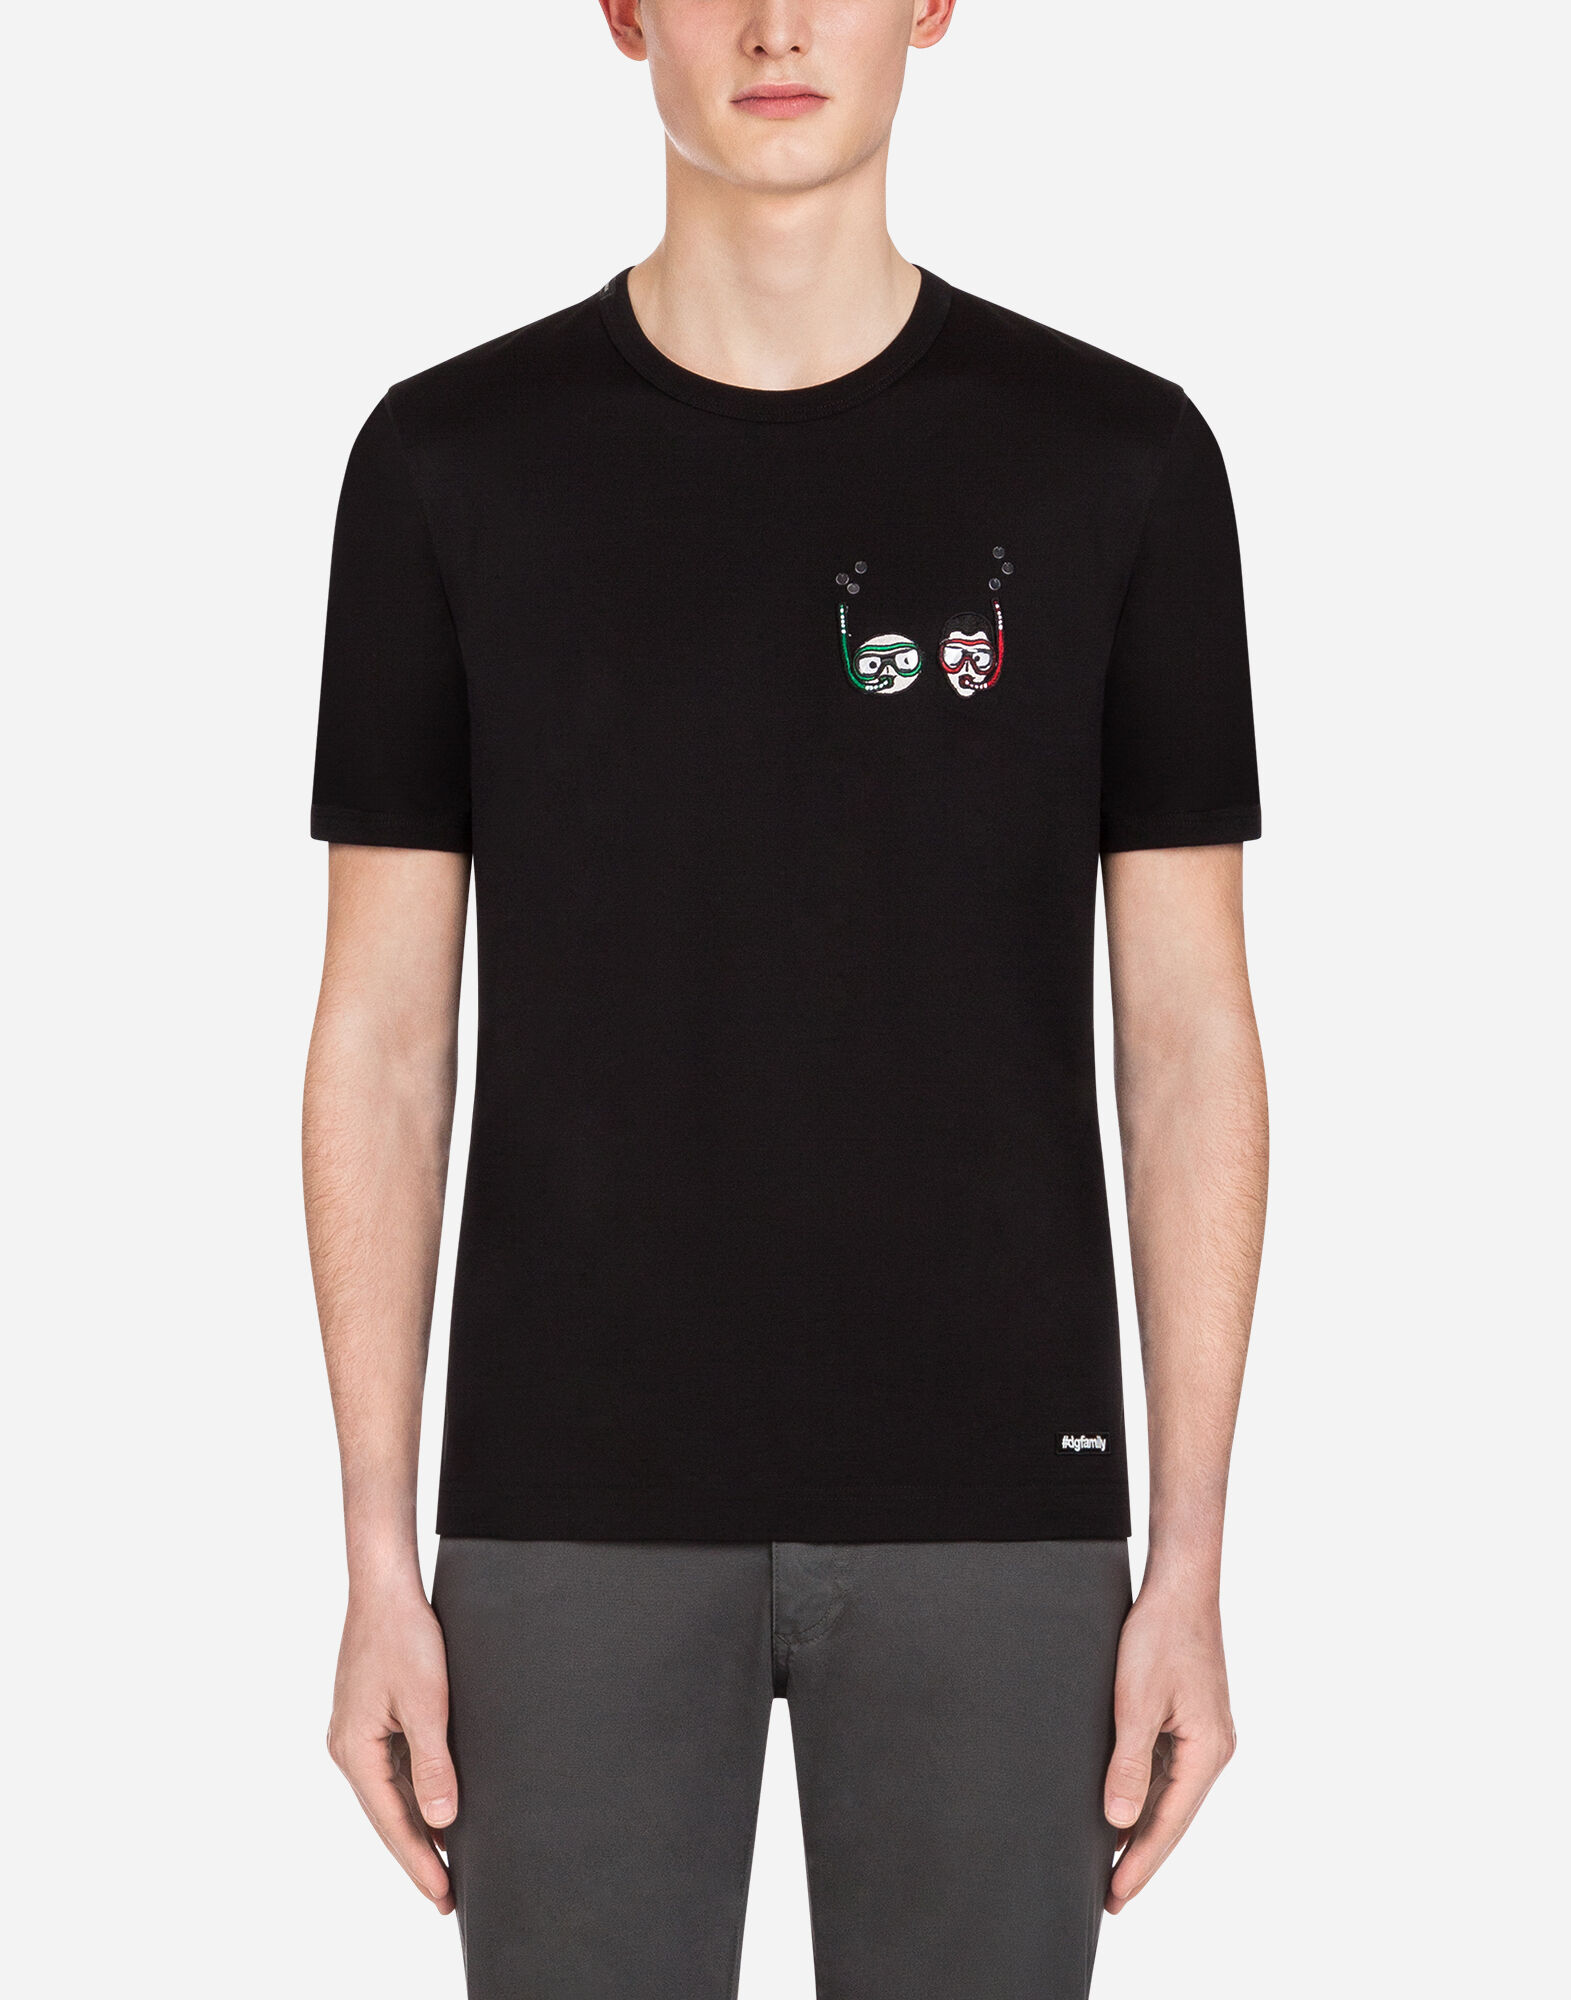 COTTON T-SHIRT WITH PATCHES from DOLCE & GABBANA